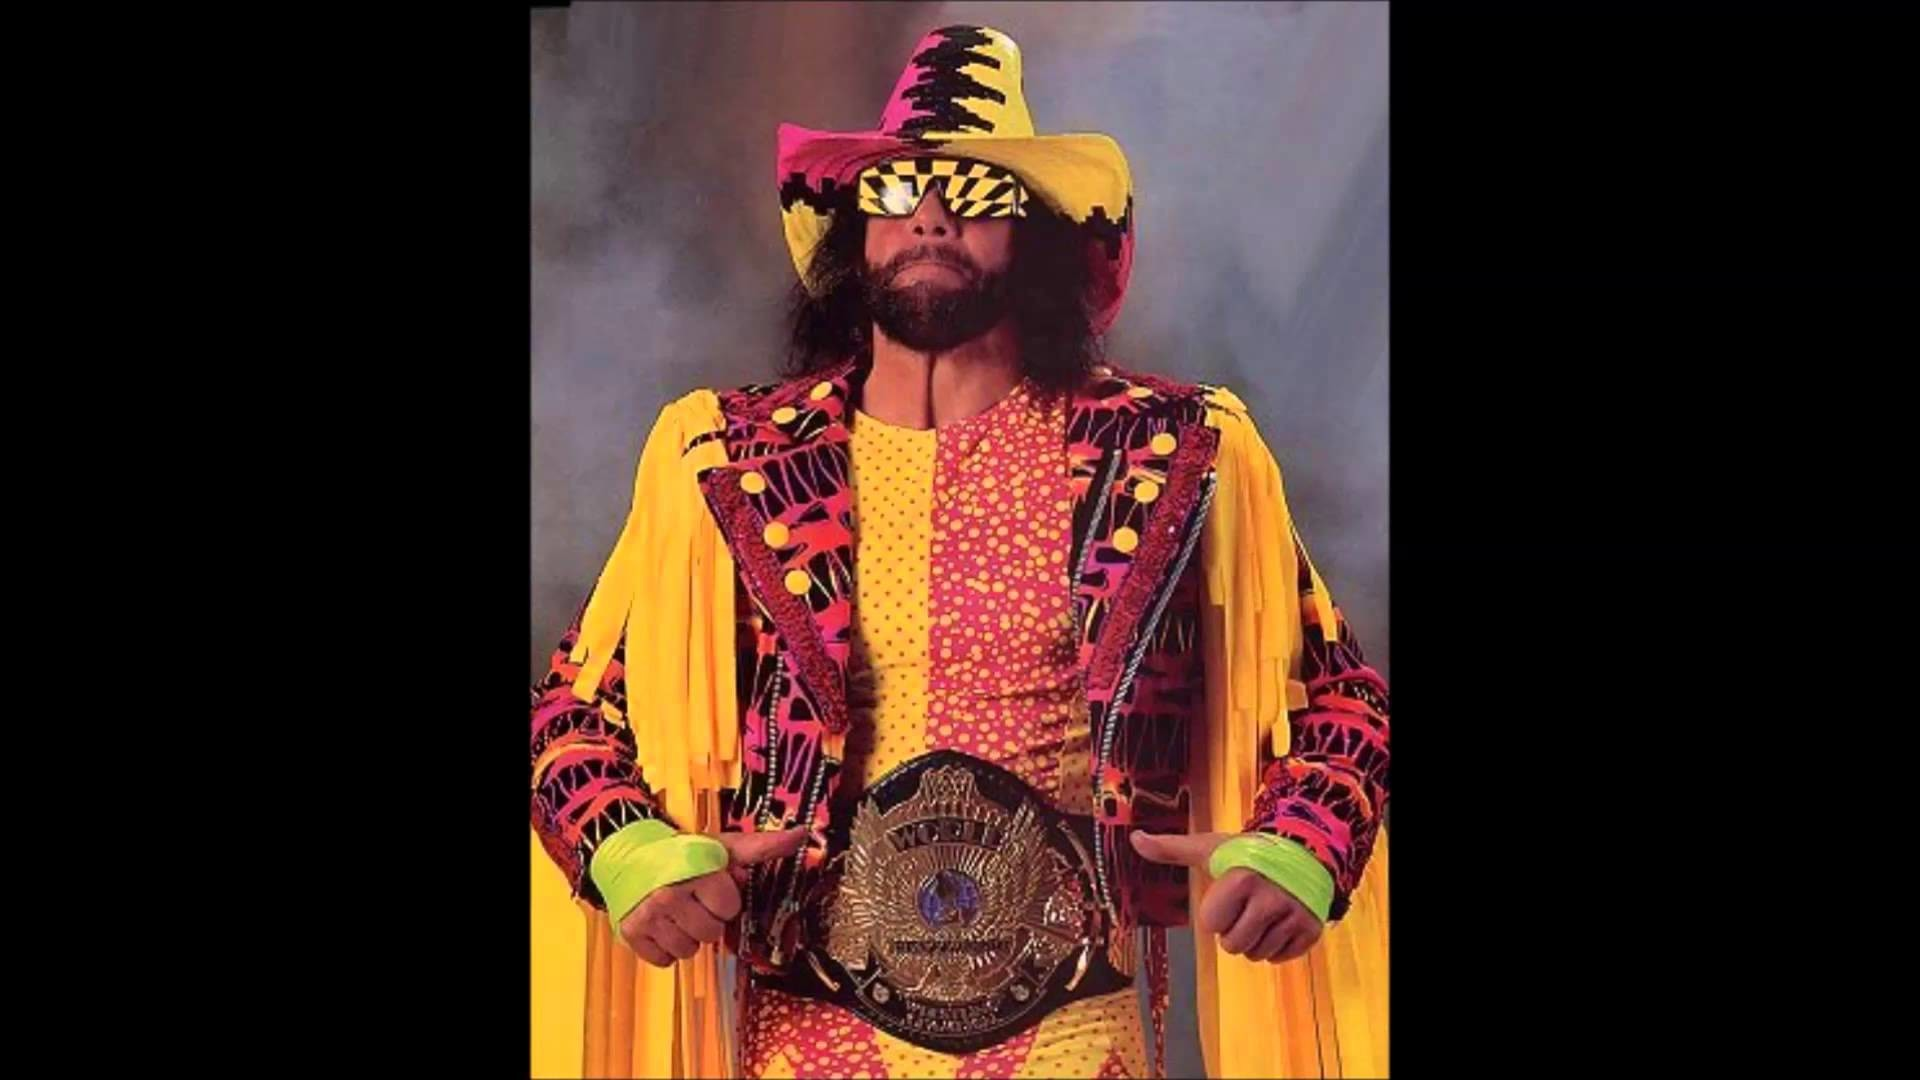 1920x1080 Macho Man By Randy Savage(Village People Parody)